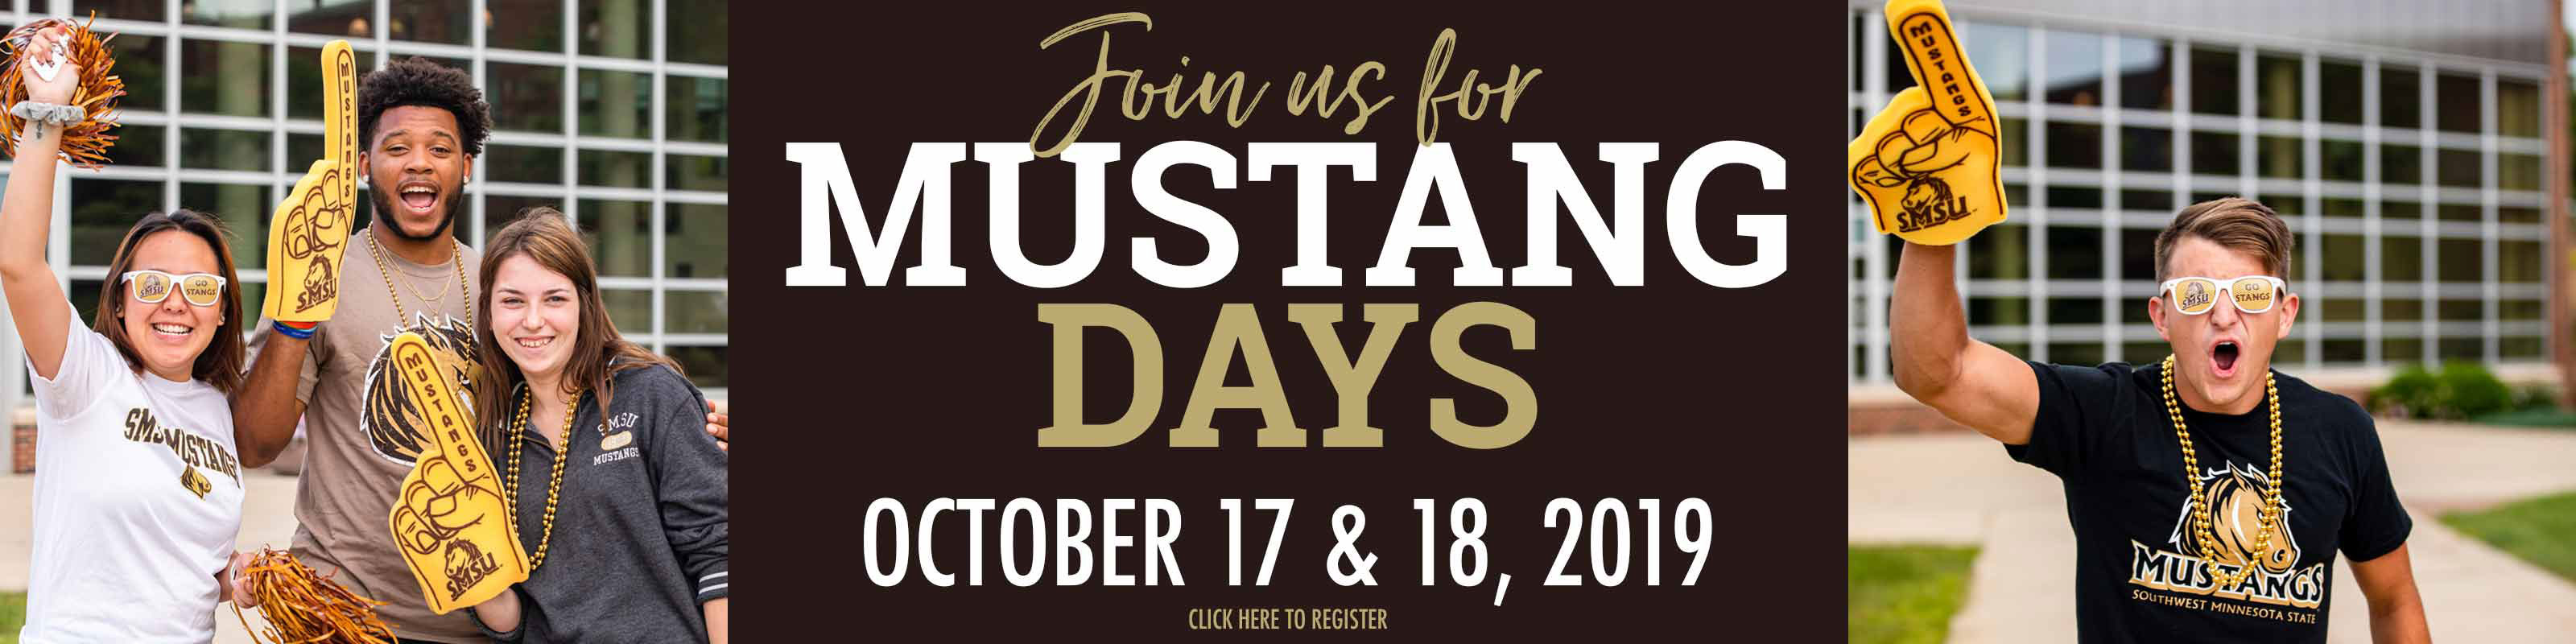 Join us for Mustang Days - October 17 and 18, 2019 - Click here to register